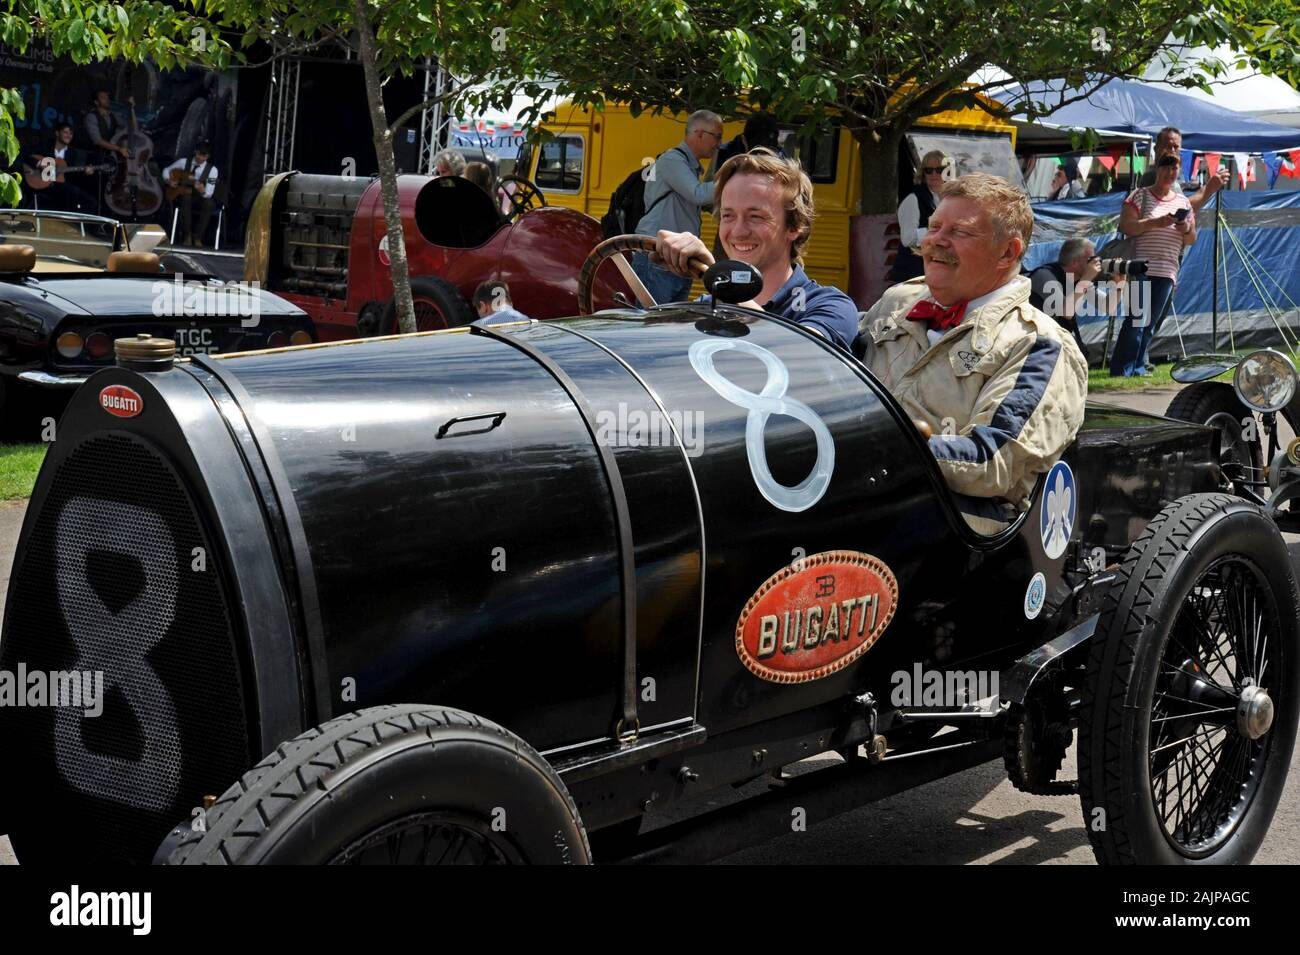 Motor Car 1912 High Resolution Stock Photography and Images - Alamy